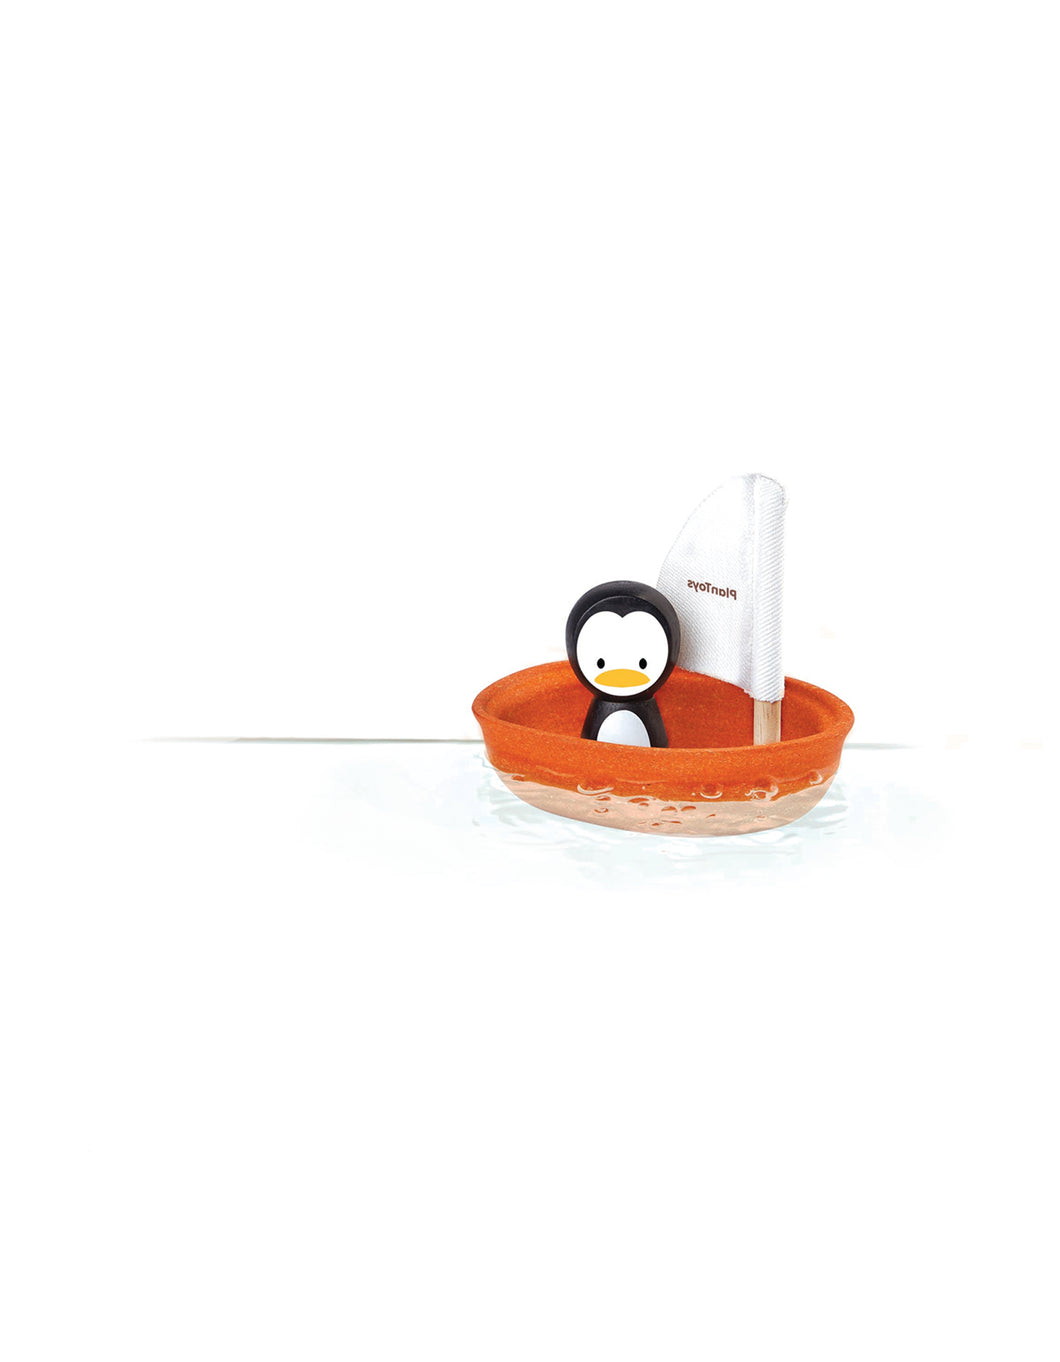 Wooden Sailing Boat Bath Toy -Penguin